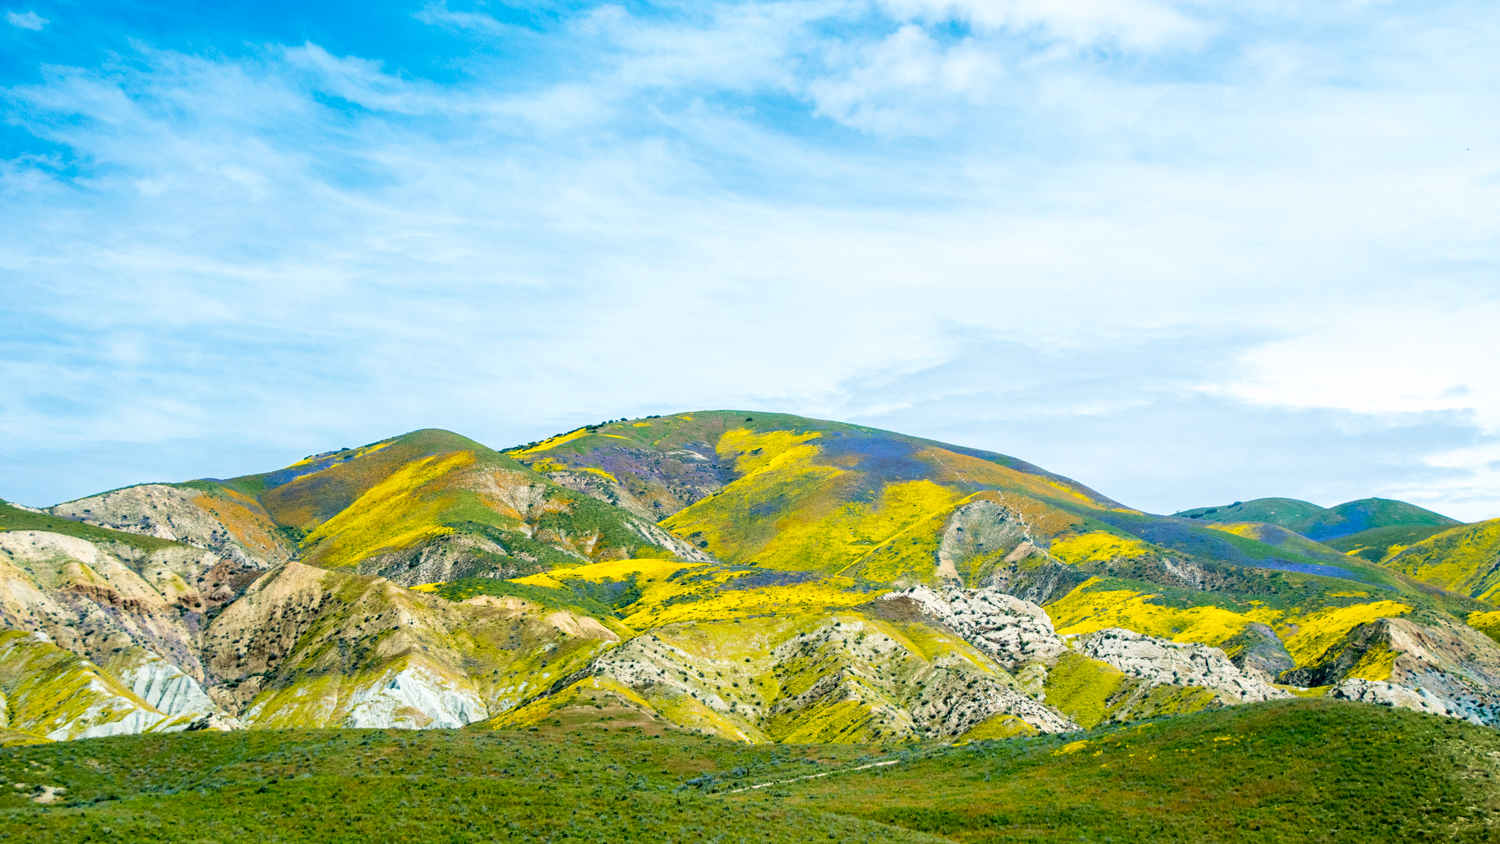 Wildflowers in bloom at Carrizo Plain in springtime. Photo: Douglas Croft / BLM